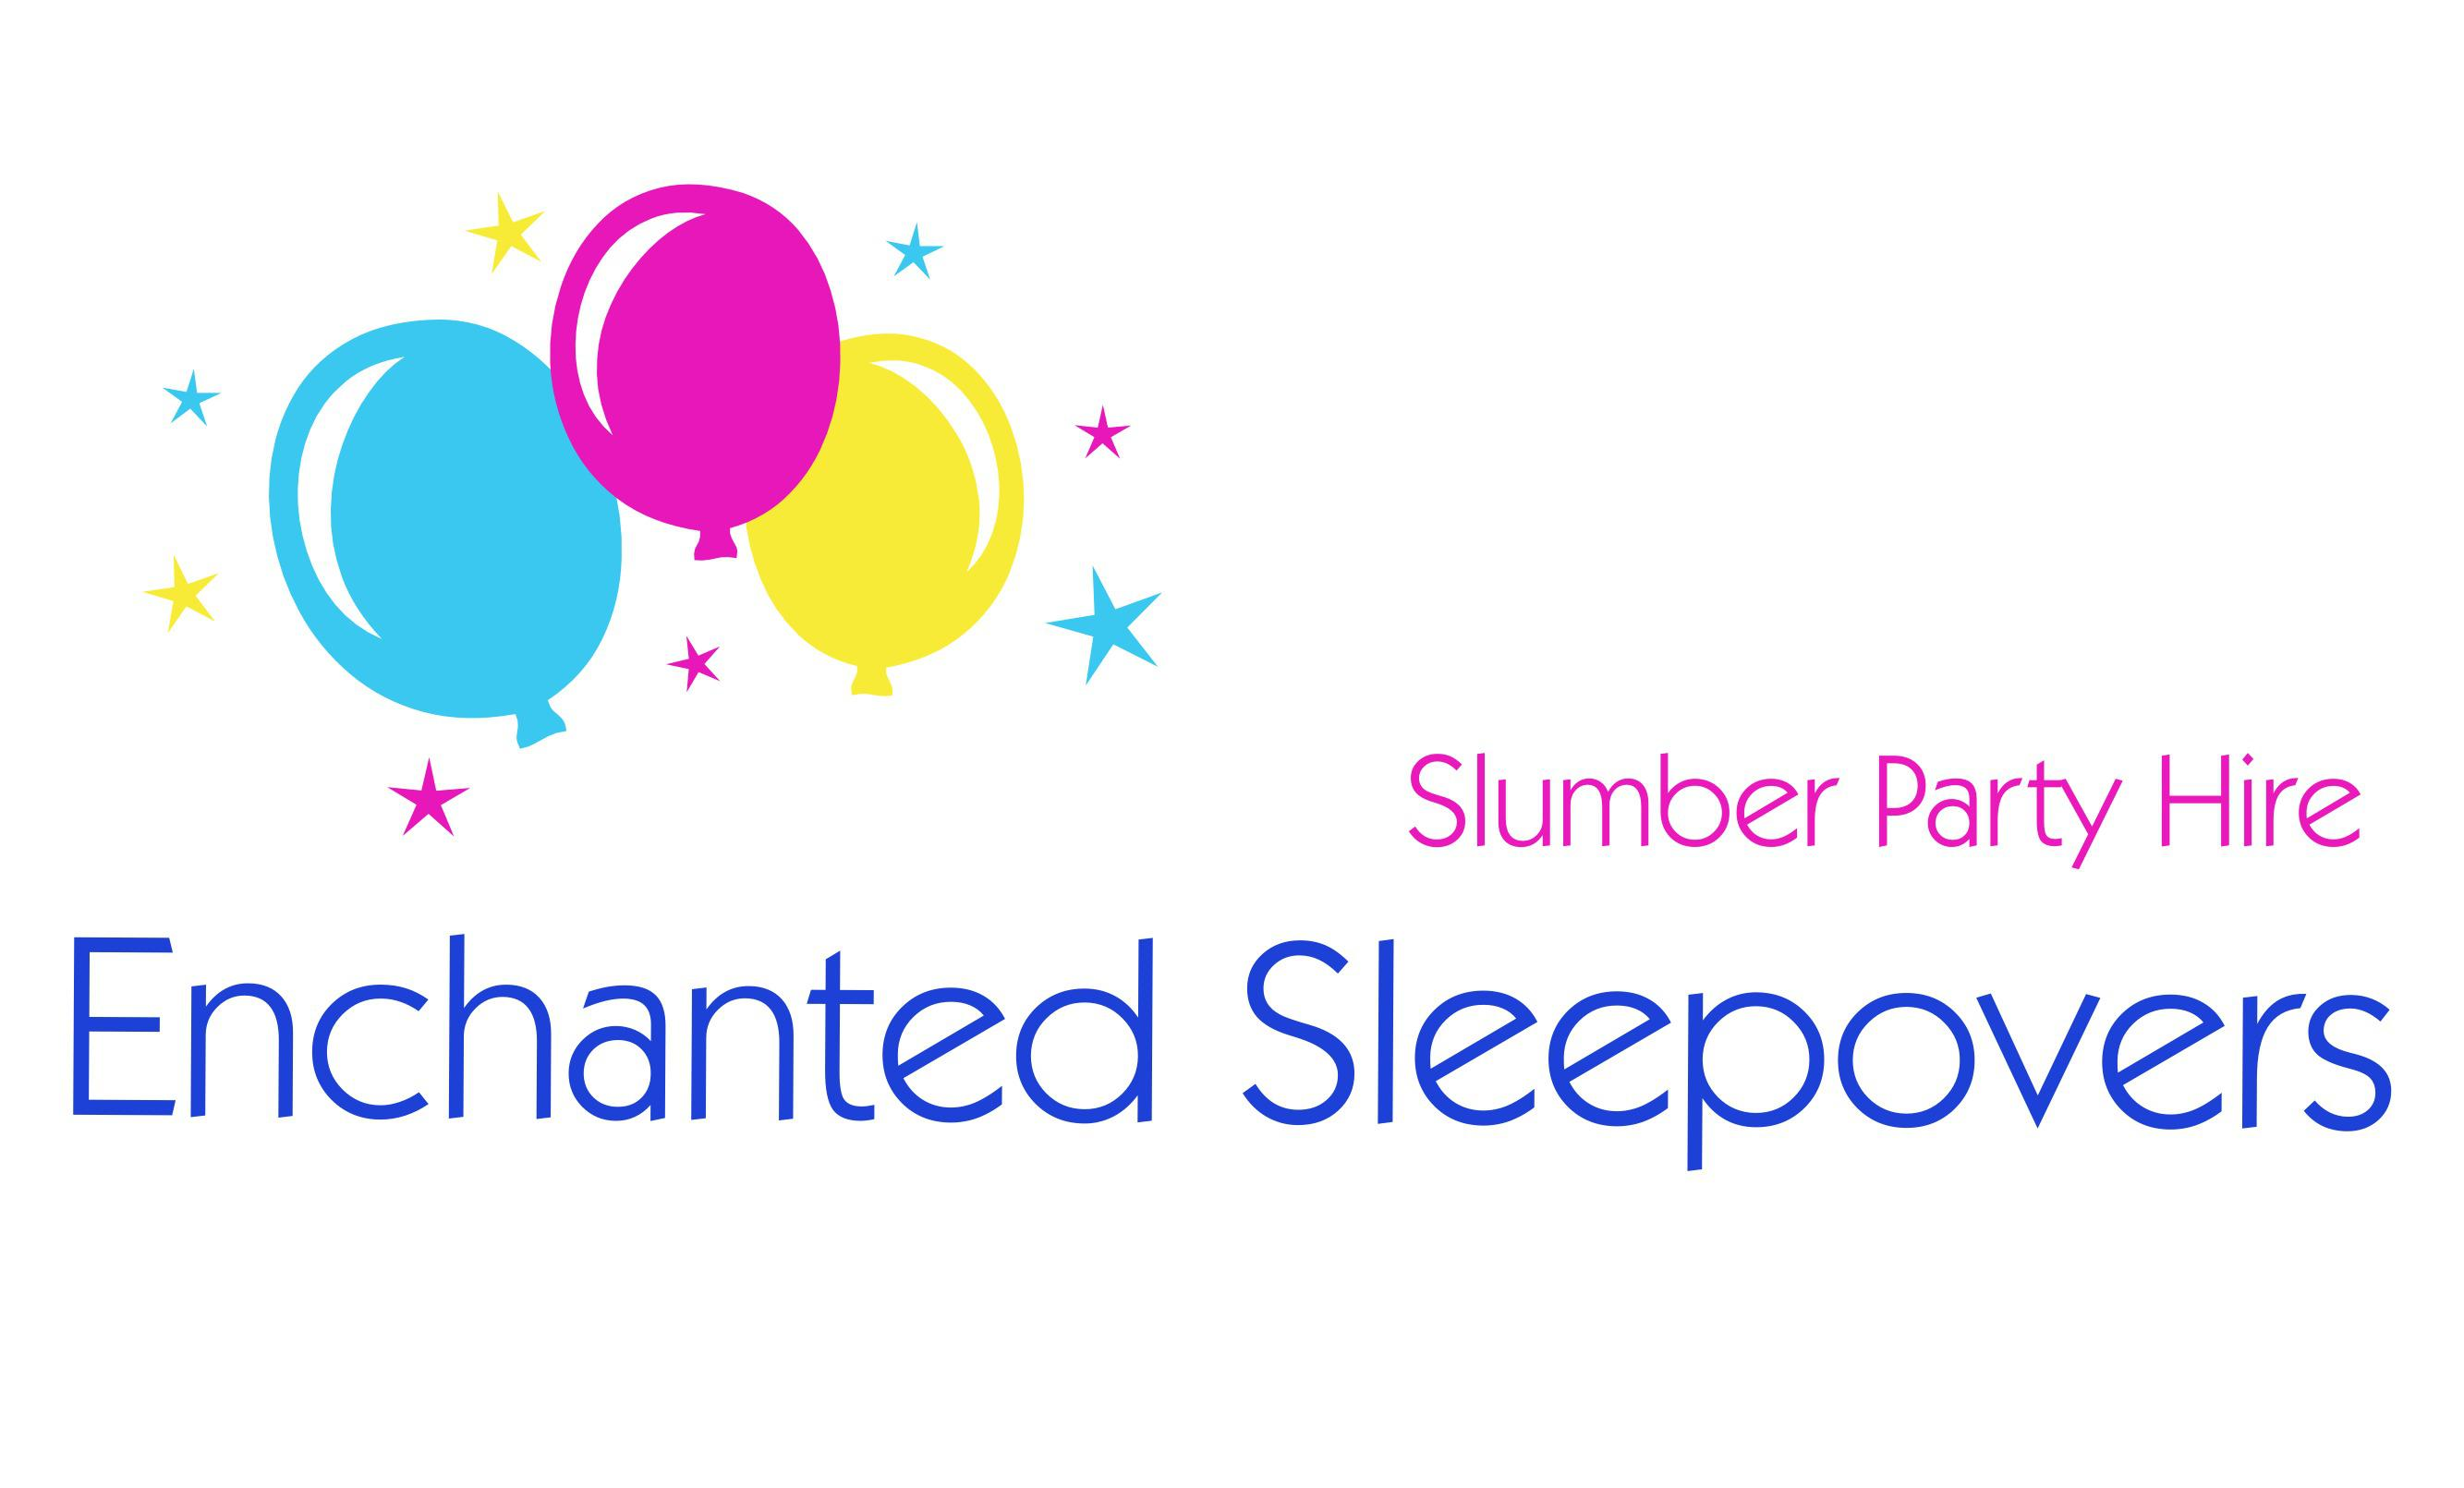 Enchanted Sleepovers Logo